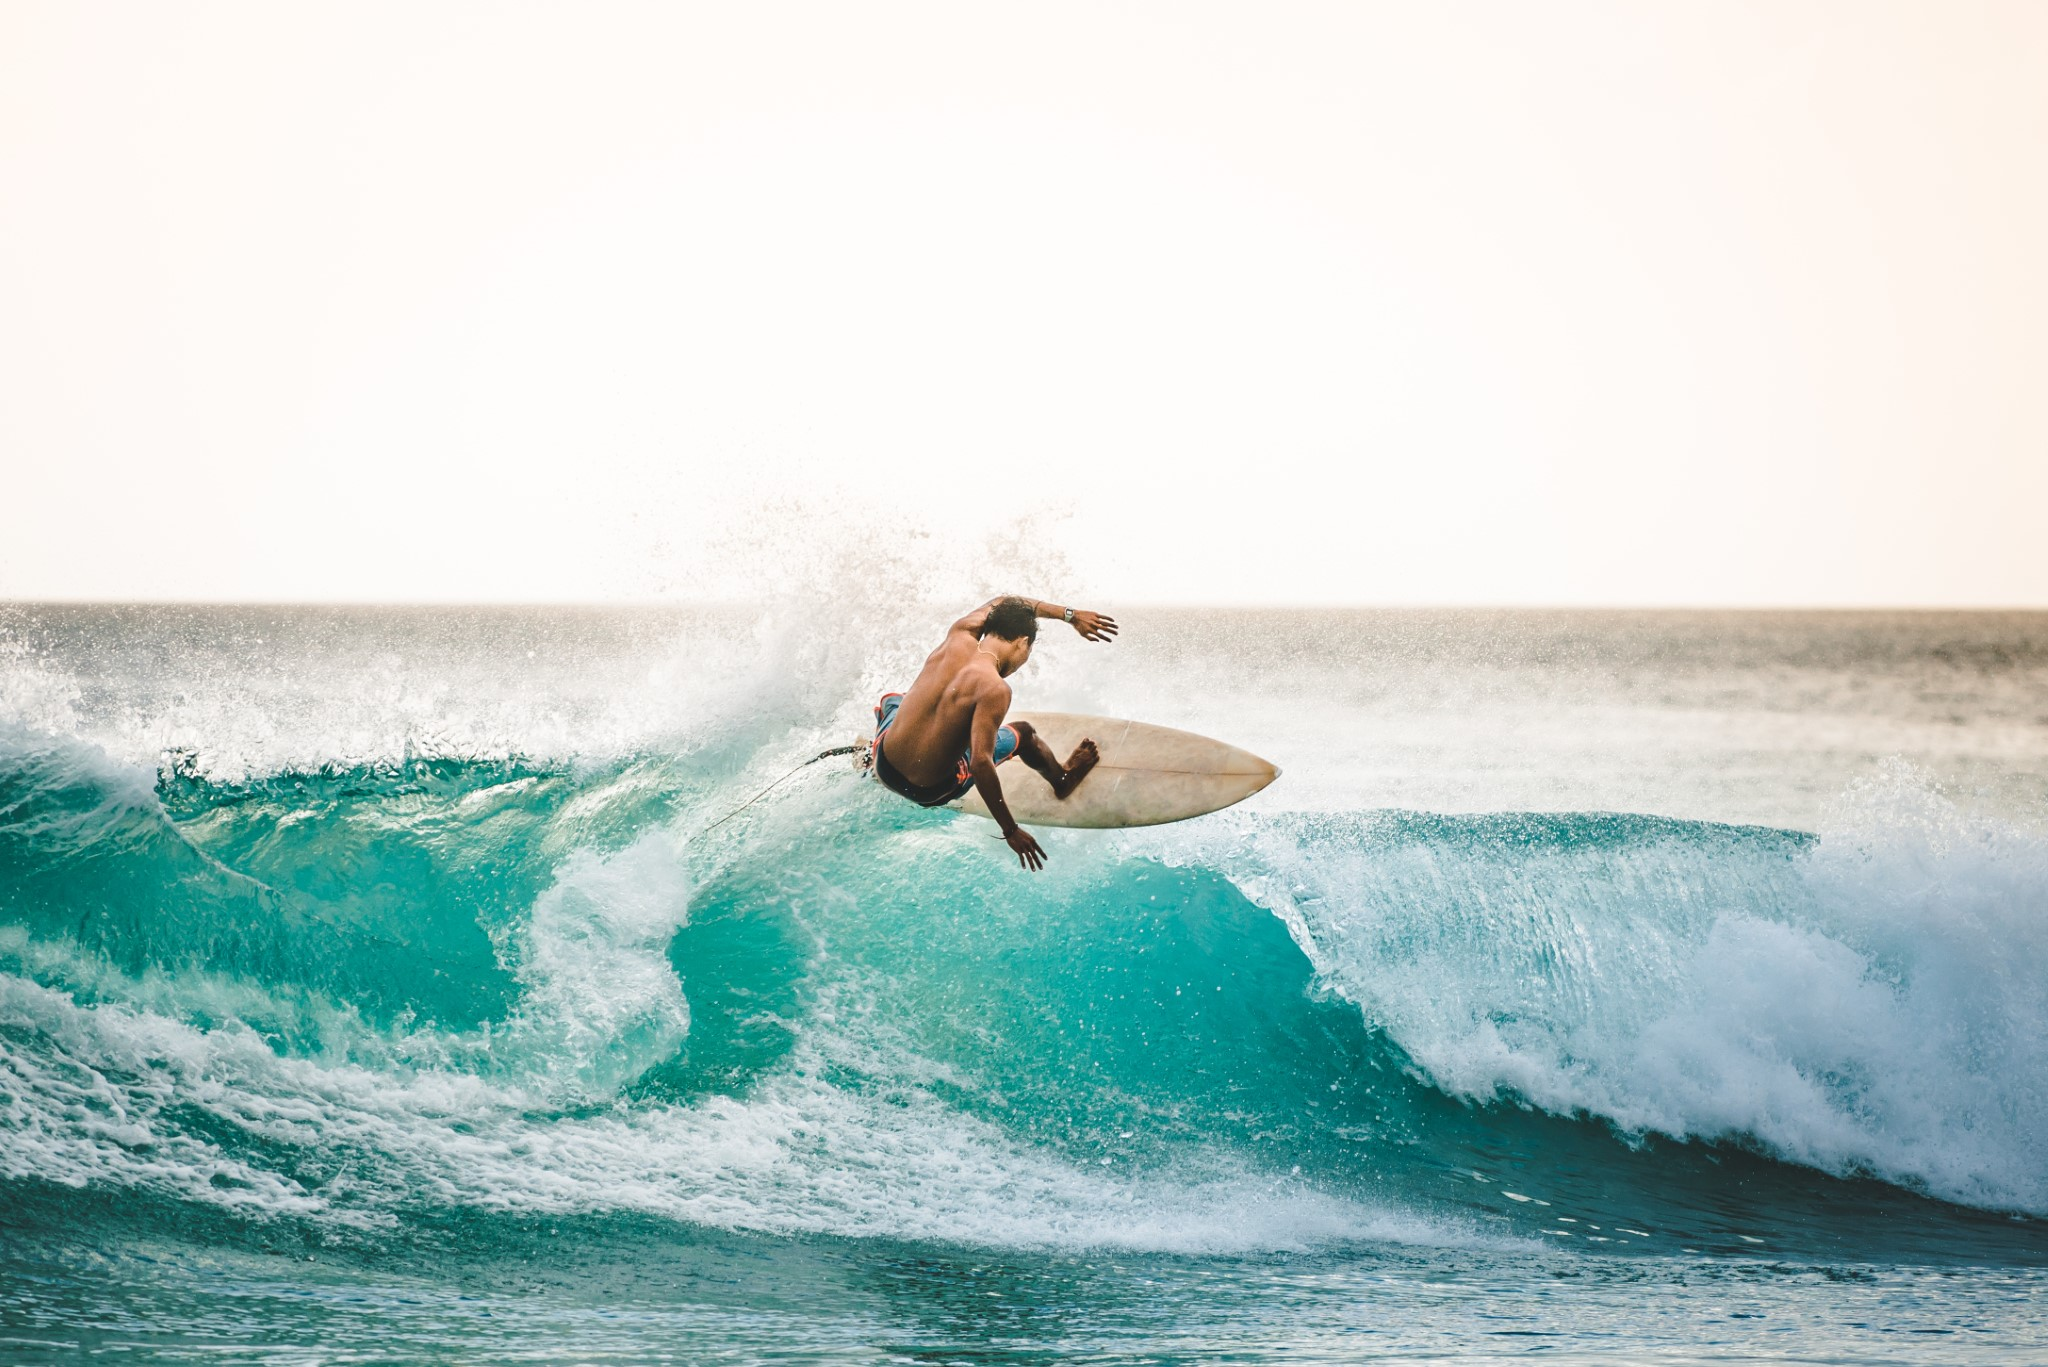 professional surfer riding waves in Bali, Indonesia. men catching waves in ocean, isolated. Surfing action water board sport. people water sport lessons and beach swimming activity on summer vacation